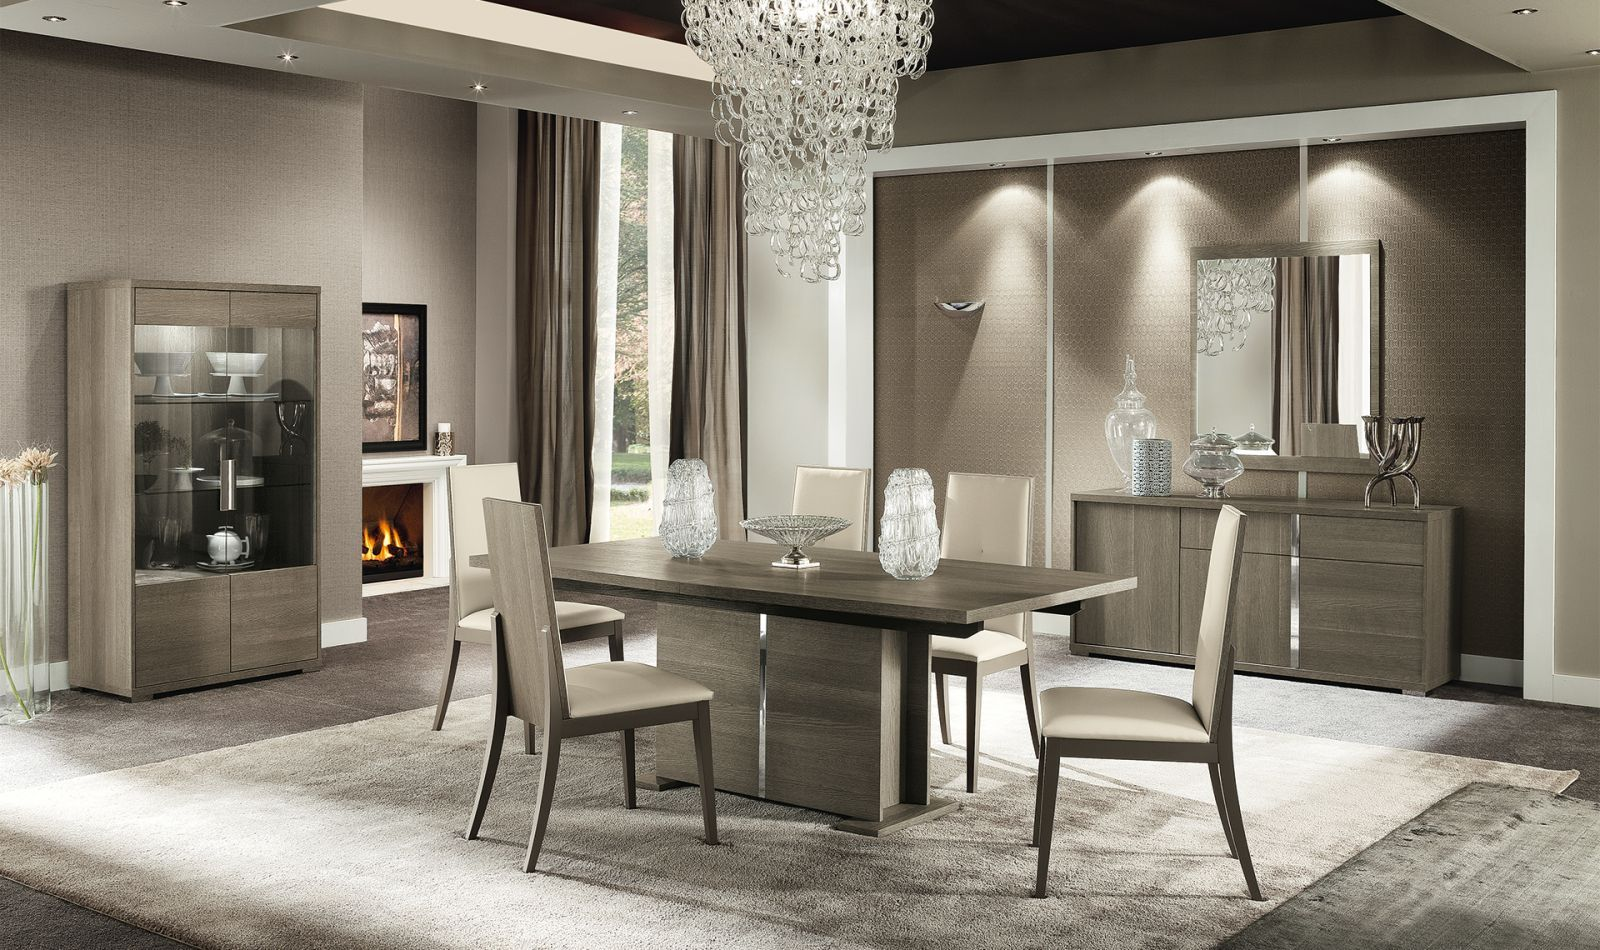 Contemporary Italian Dining Room Furniture Simple Taranto Dining Set Dining Room  Pinterest  Dining Sets And Room Inspiration Design